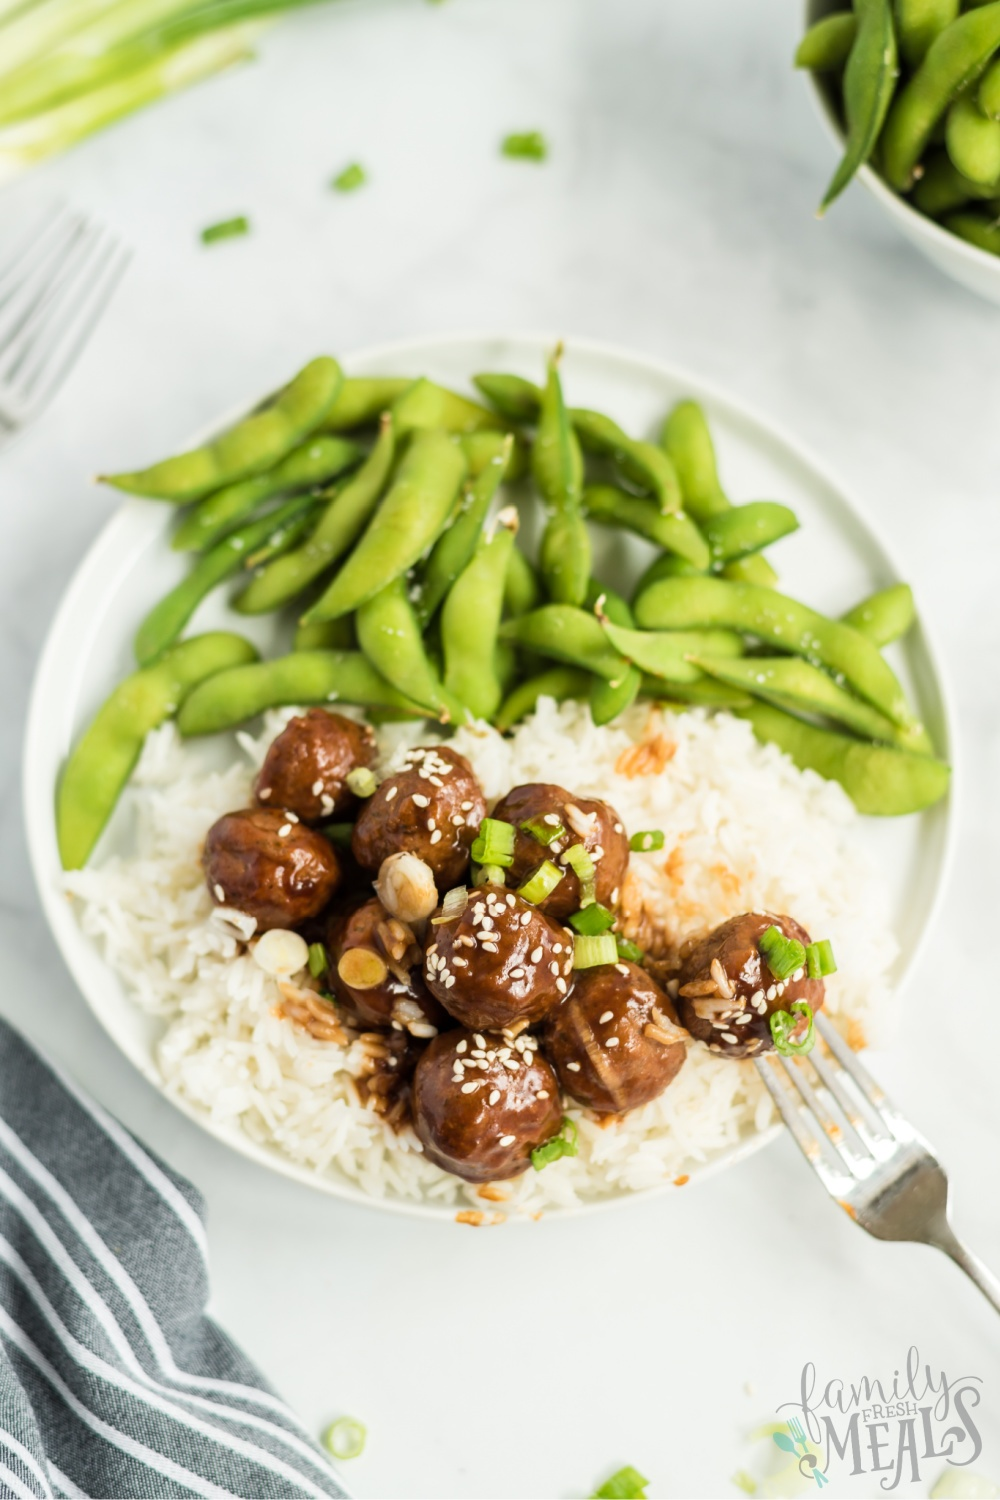 Crockpot Teriyaki Meatballs Recipe from Family Fresh Meals via @familyfresh